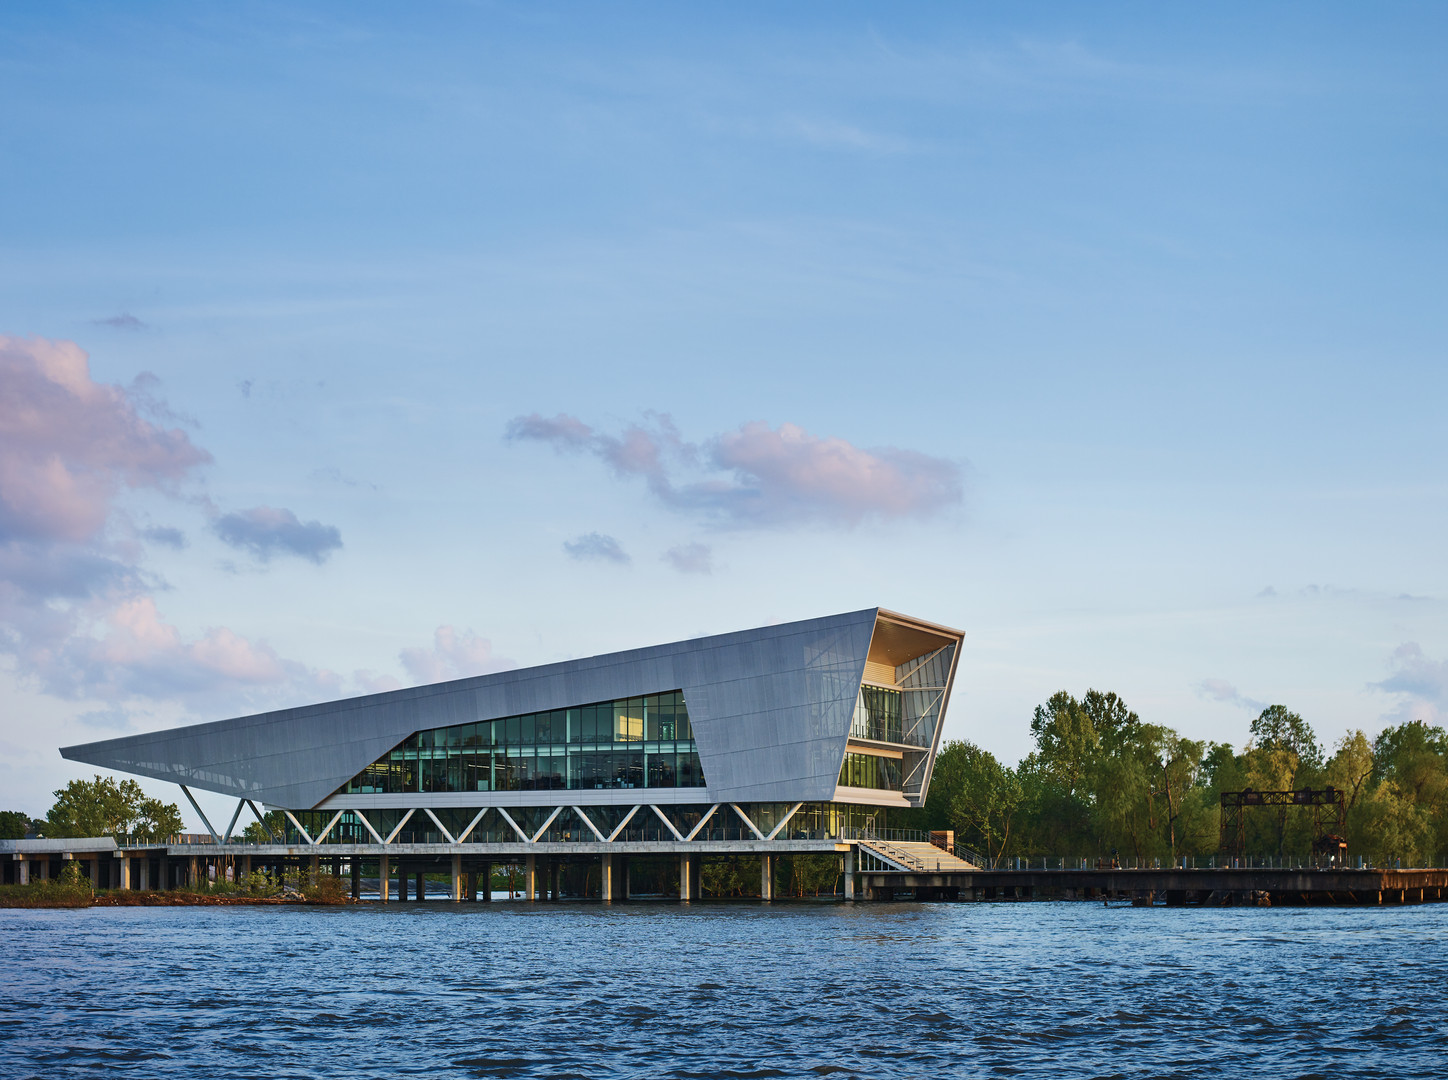 Architecture, commercial: The Water Institute ofthe Gulf